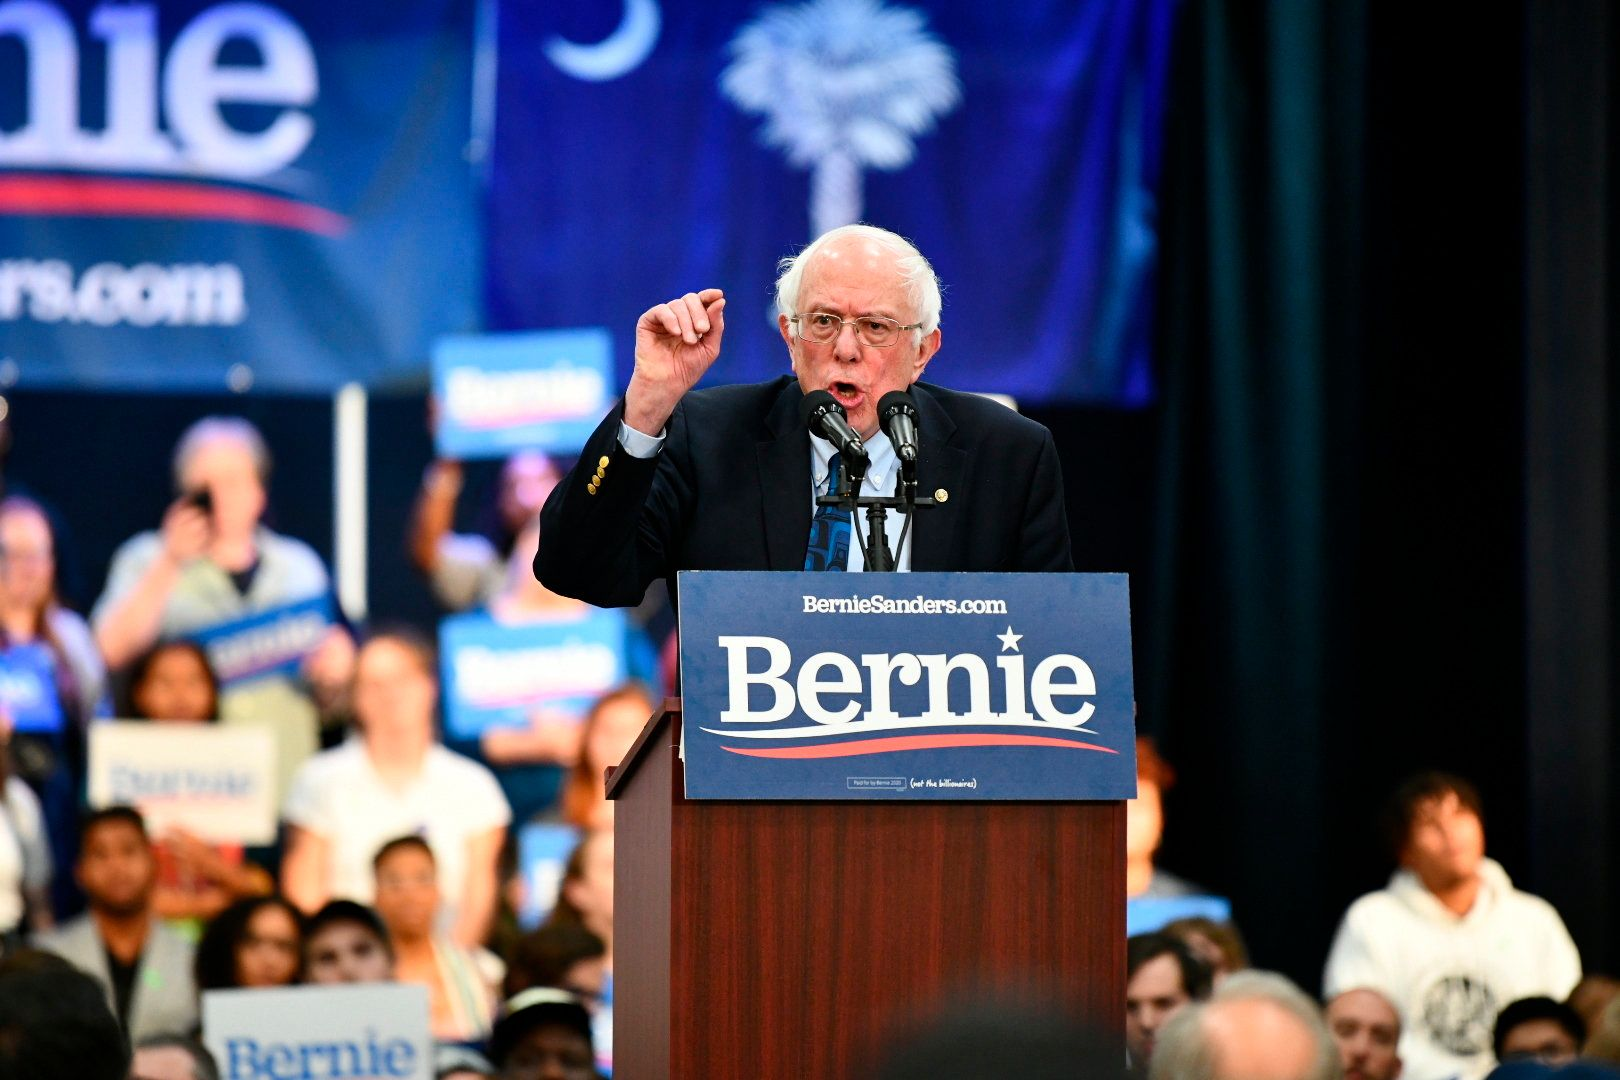 Vermont Sen. Bernie Sanders addresses a rally in North Charleston, S.C., on Thursday, March 14, 2019. Sanders returned to the early-voting state, where primary voters gave him a 47-point drubbing in his 2016 campaign, for his first rally here since officially launching his 2020 presidential bid. (AP Photo/Meg Kinnard)